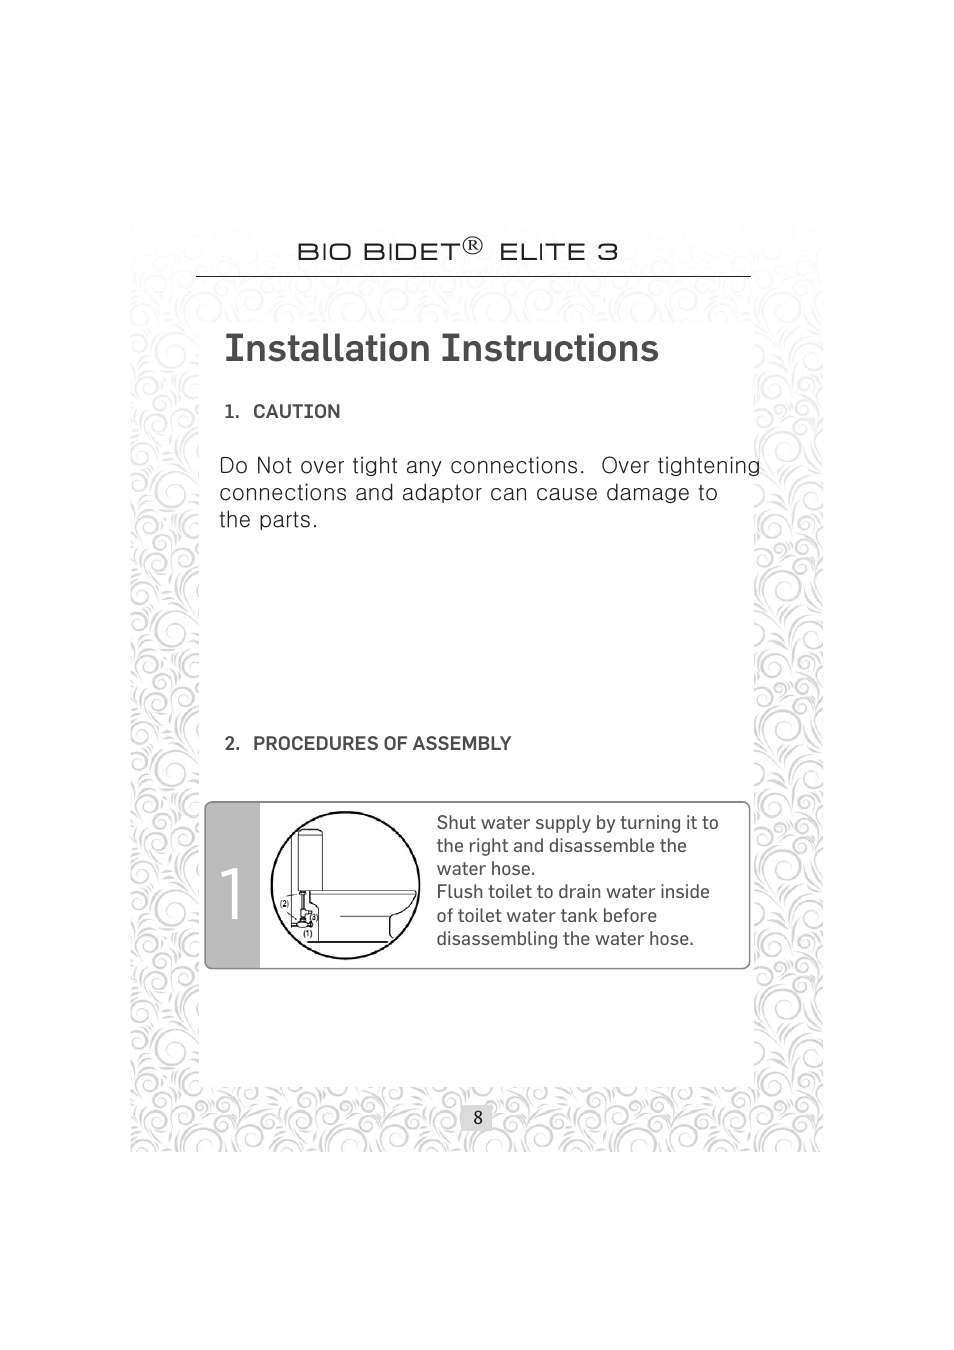 Bio Bidet Installation Instructions.Installation Instructions Bio Bidet Elite3 Bidet Attachment User